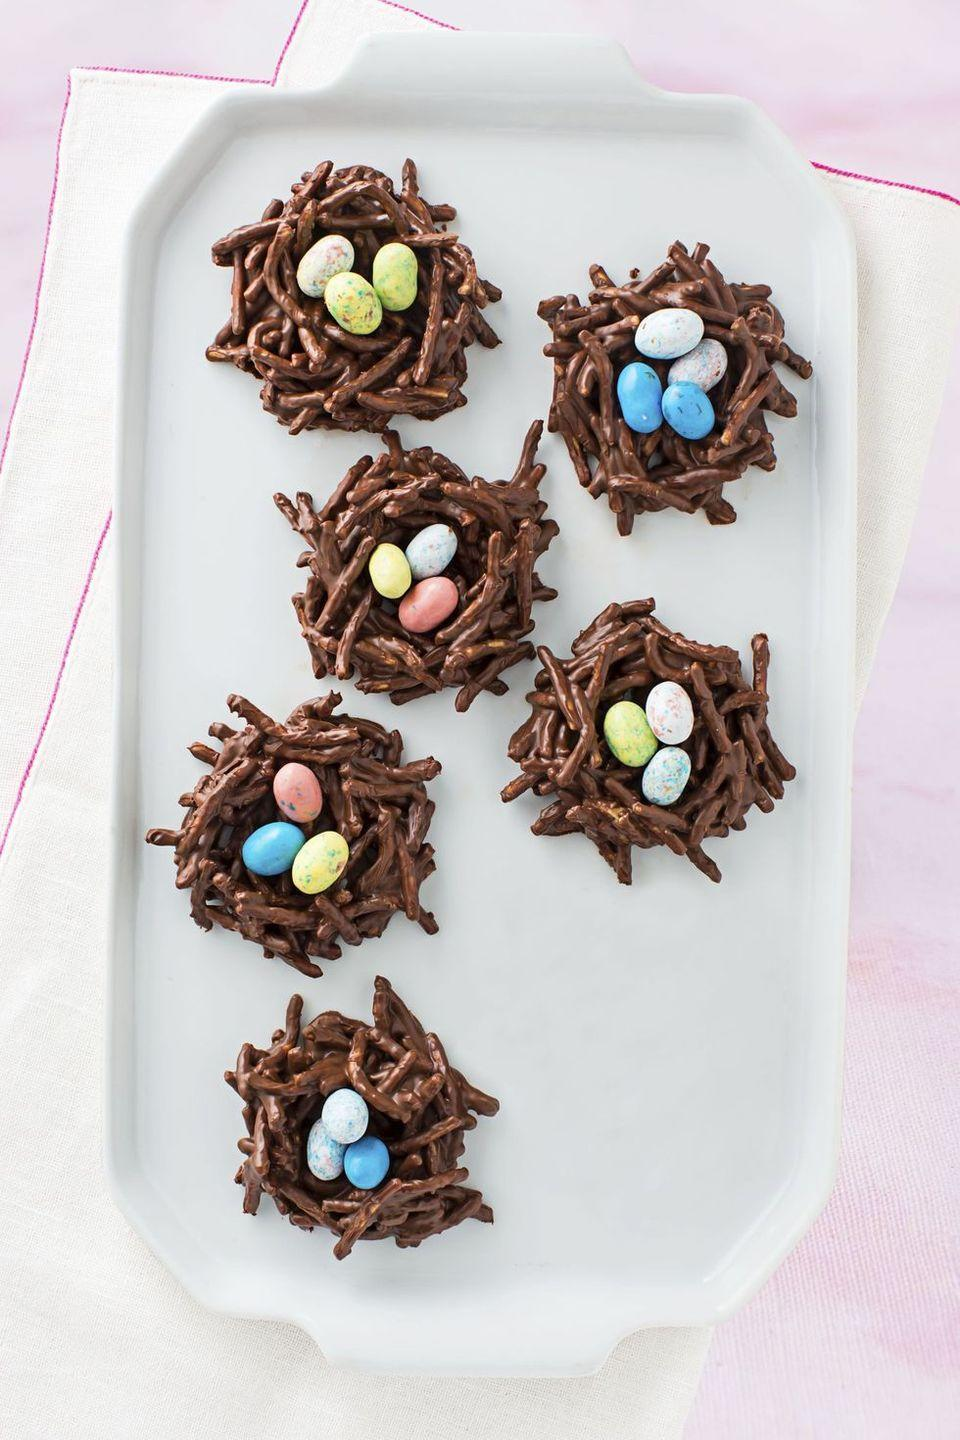 """<p>The chow mein noodle nests deliver the crunch, while the Cadbury mini eggs bring the decadent chocolate flavor. </p><p><em><a href=""""https://www.goodhousekeeping.com/food-recipes/a1530/chocolate-nests-recipe-ghk0415/"""" rel=""""nofollow noopener"""" target=""""_blank"""" data-ylk=""""slk:Get the recipe for Chocolate Nests »"""" class=""""link rapid-noclick-resp"""">Get the recipe for Chocolate Nests »</a></em></p>"""